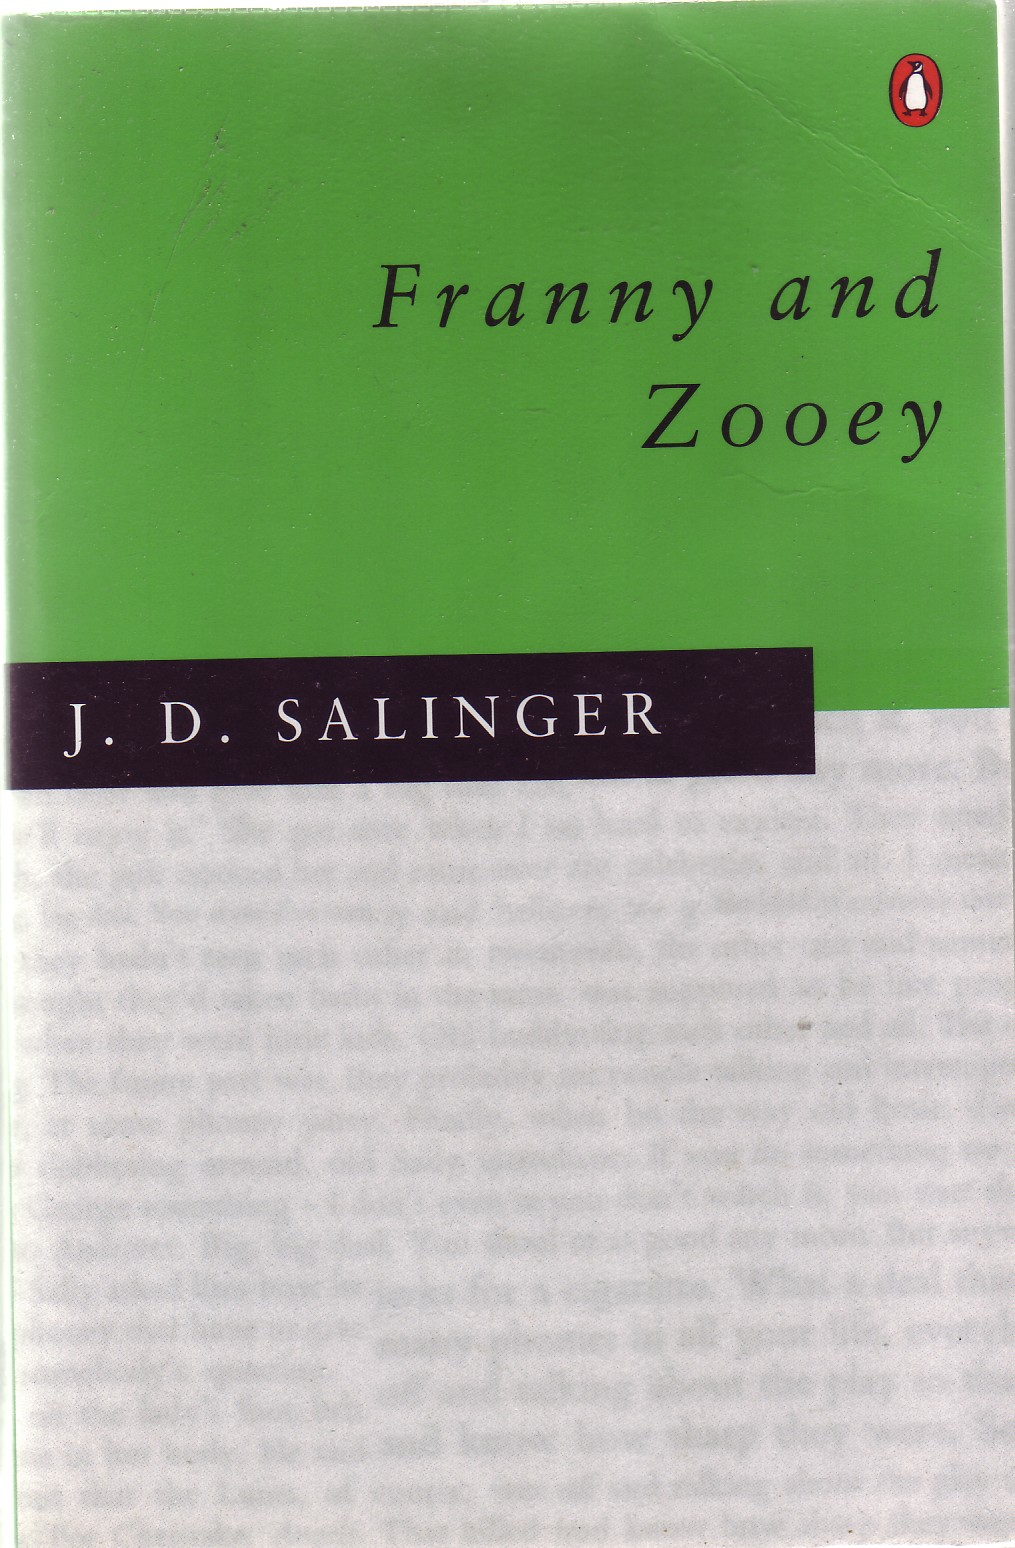 [franny+and+zoory]